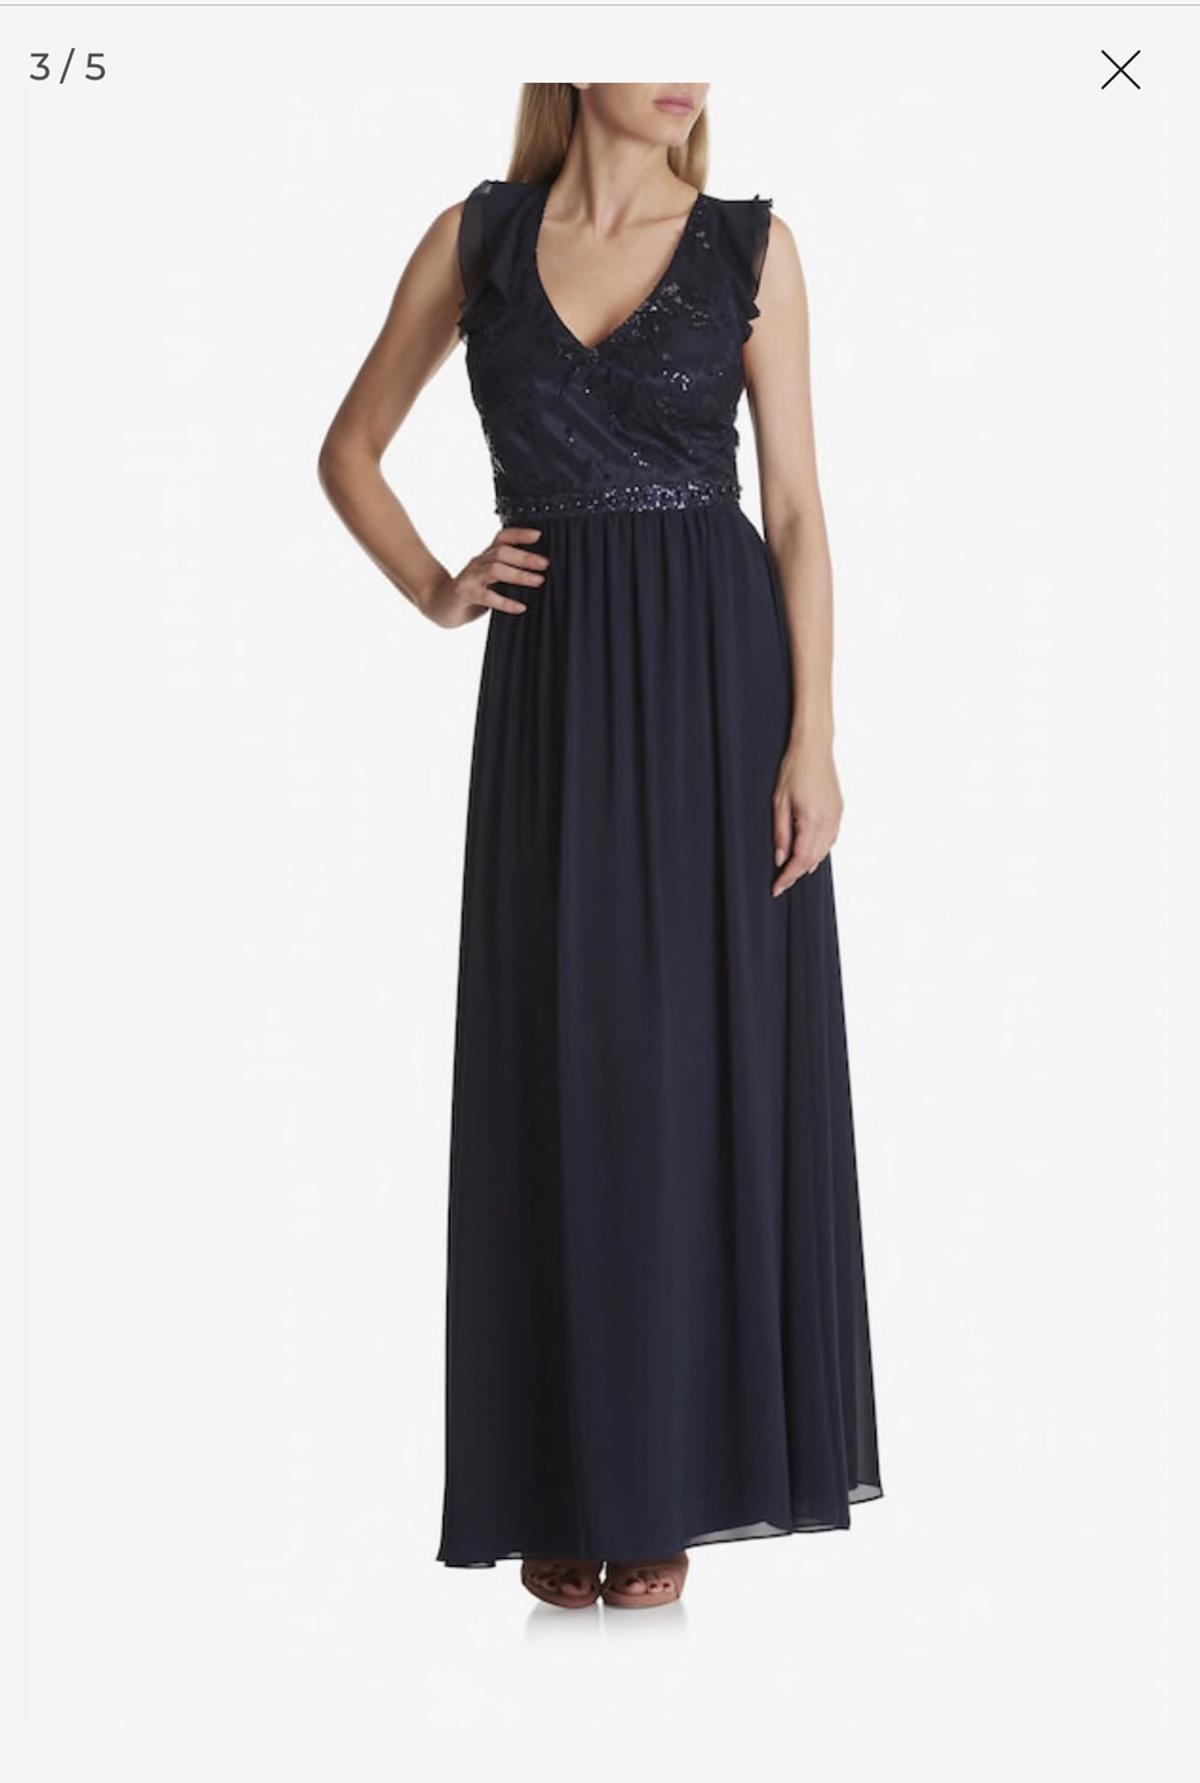 Vera Mont Abendkleid dunkelblau Neu in 12 Berlin for €12.12